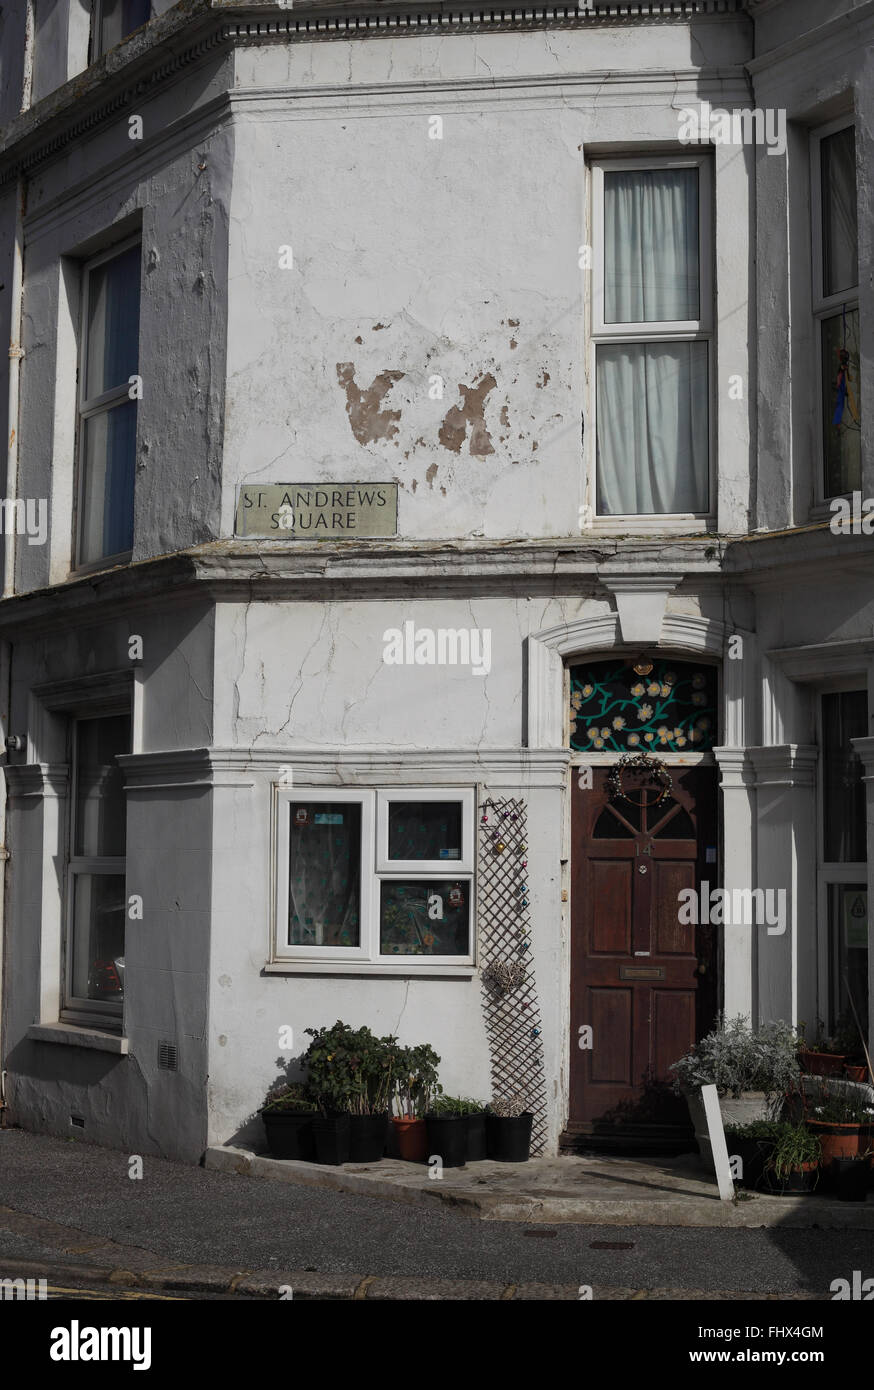 Typical house in need of TLC in St Andrews Square, Hastings, East Sussex, UK - Stock Image